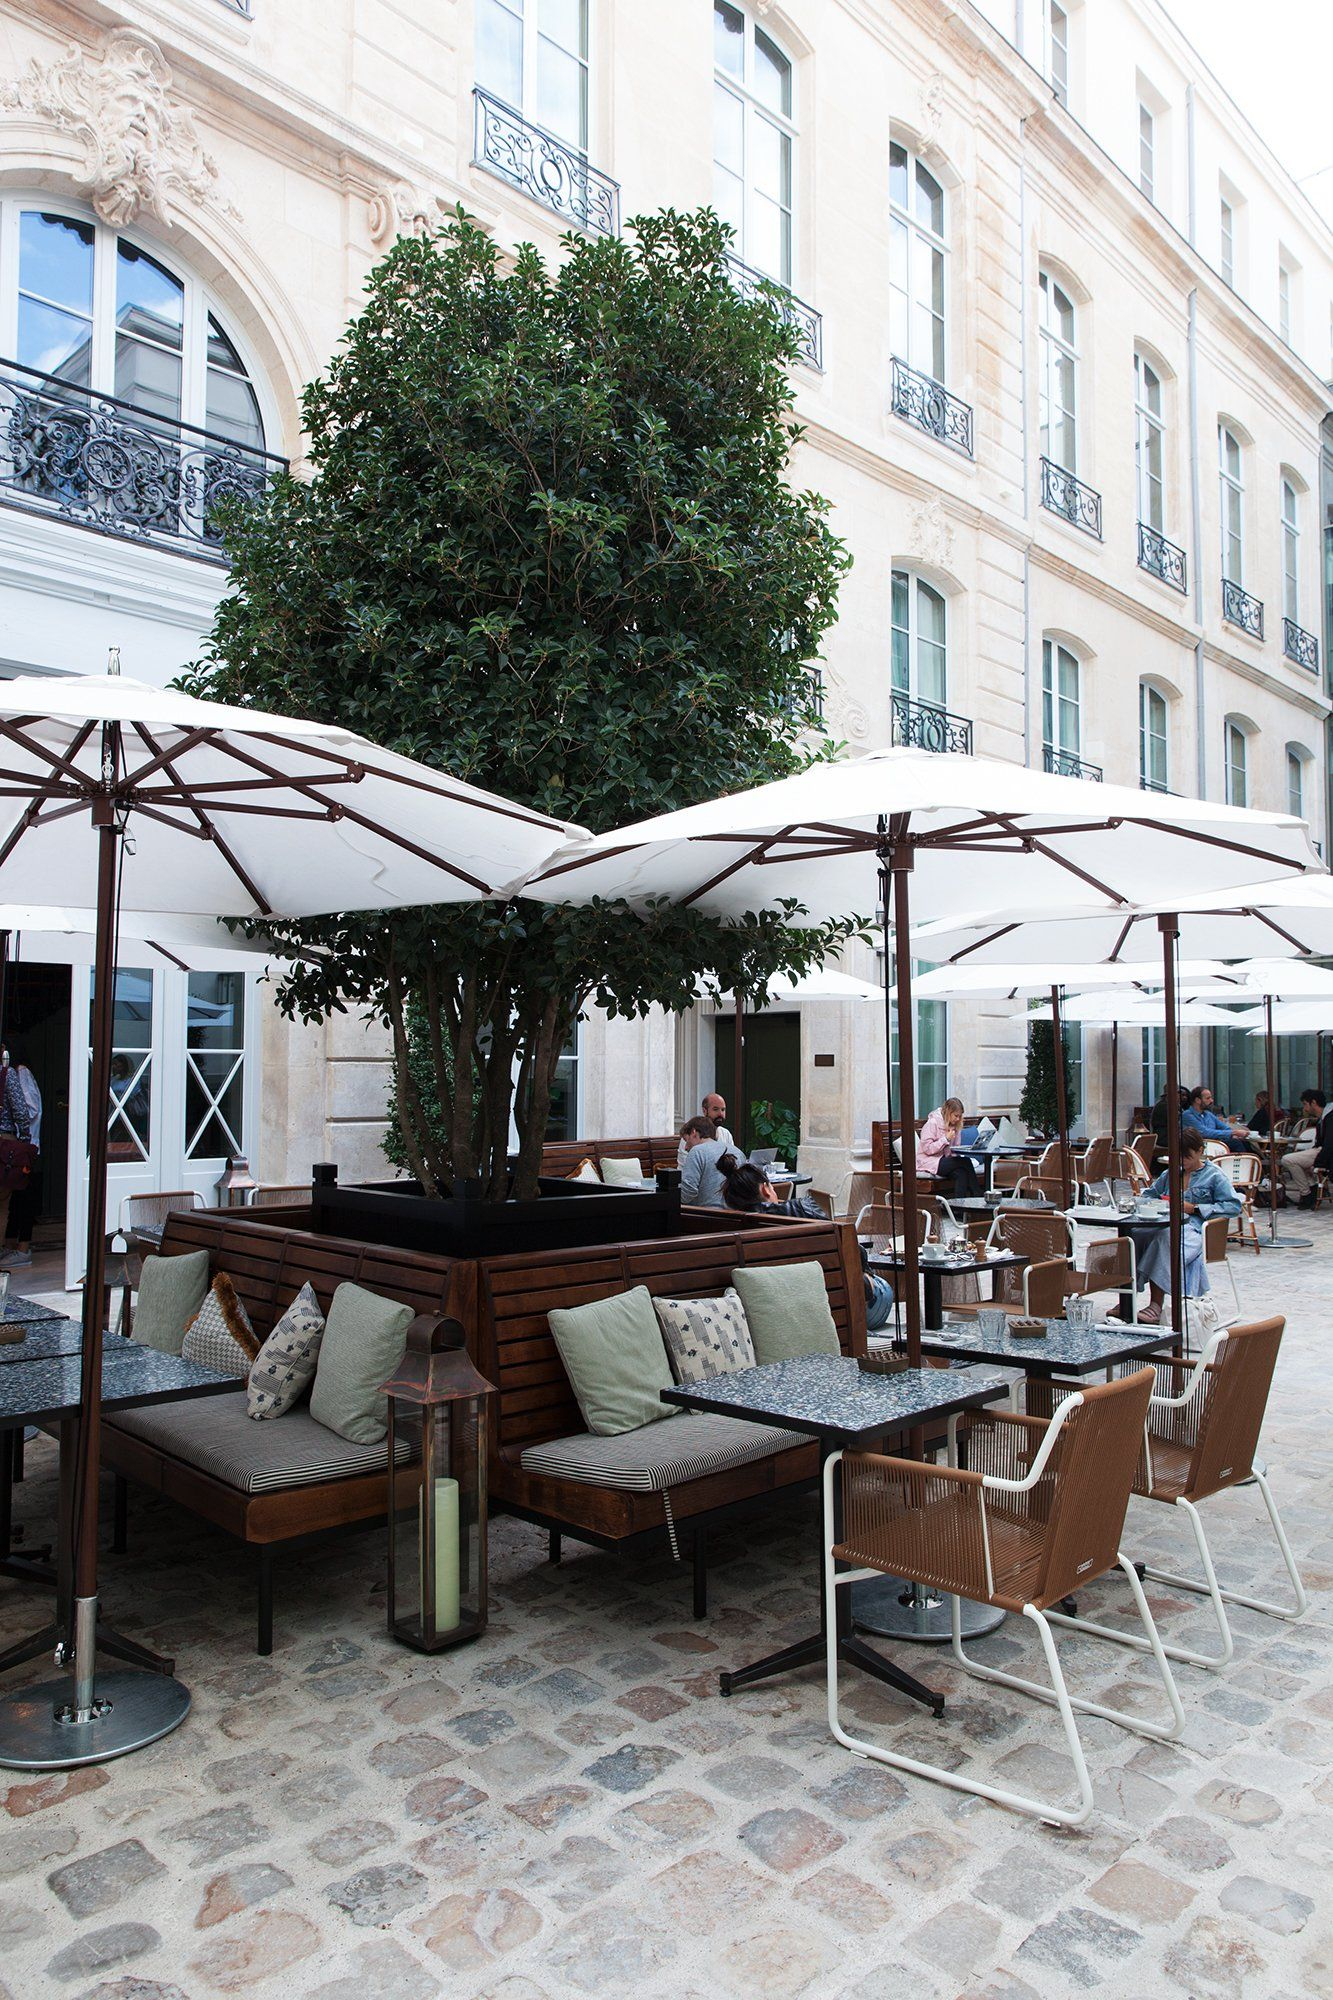 Terrasse Hotel Paris The Hoxton The Hotel But Differently In 2019 Restaurants